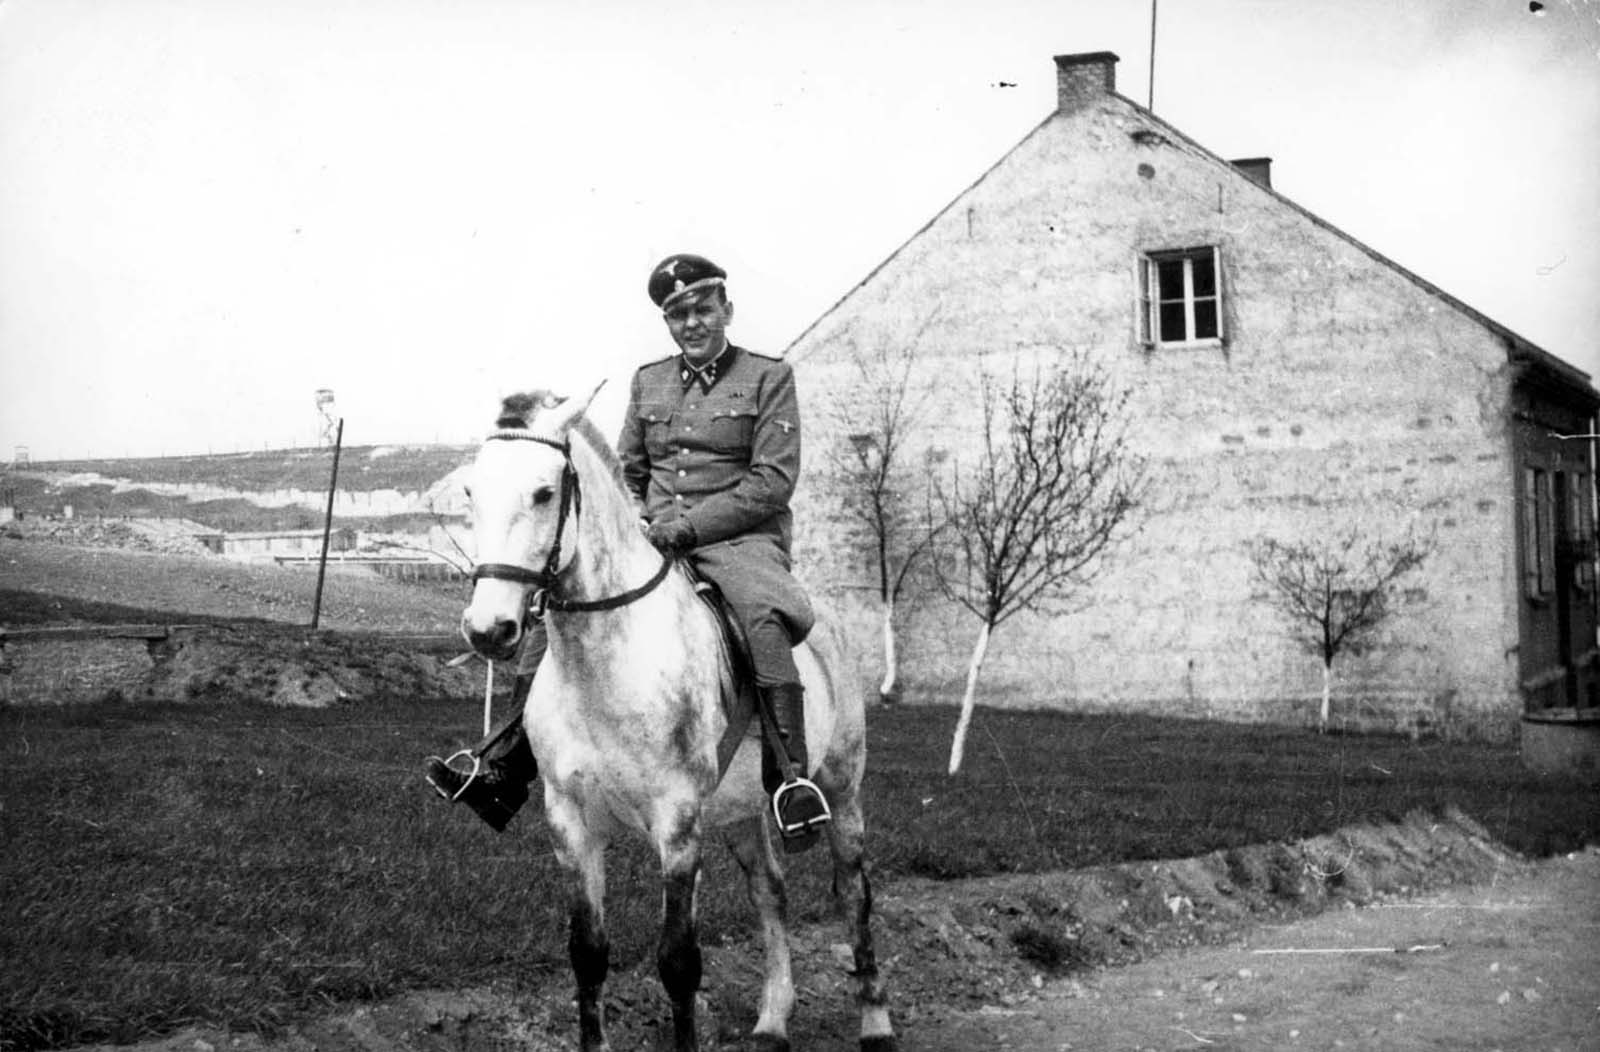 Camp Commandant Amon L. Goeth, riding a horse. Plaszow, Poland.